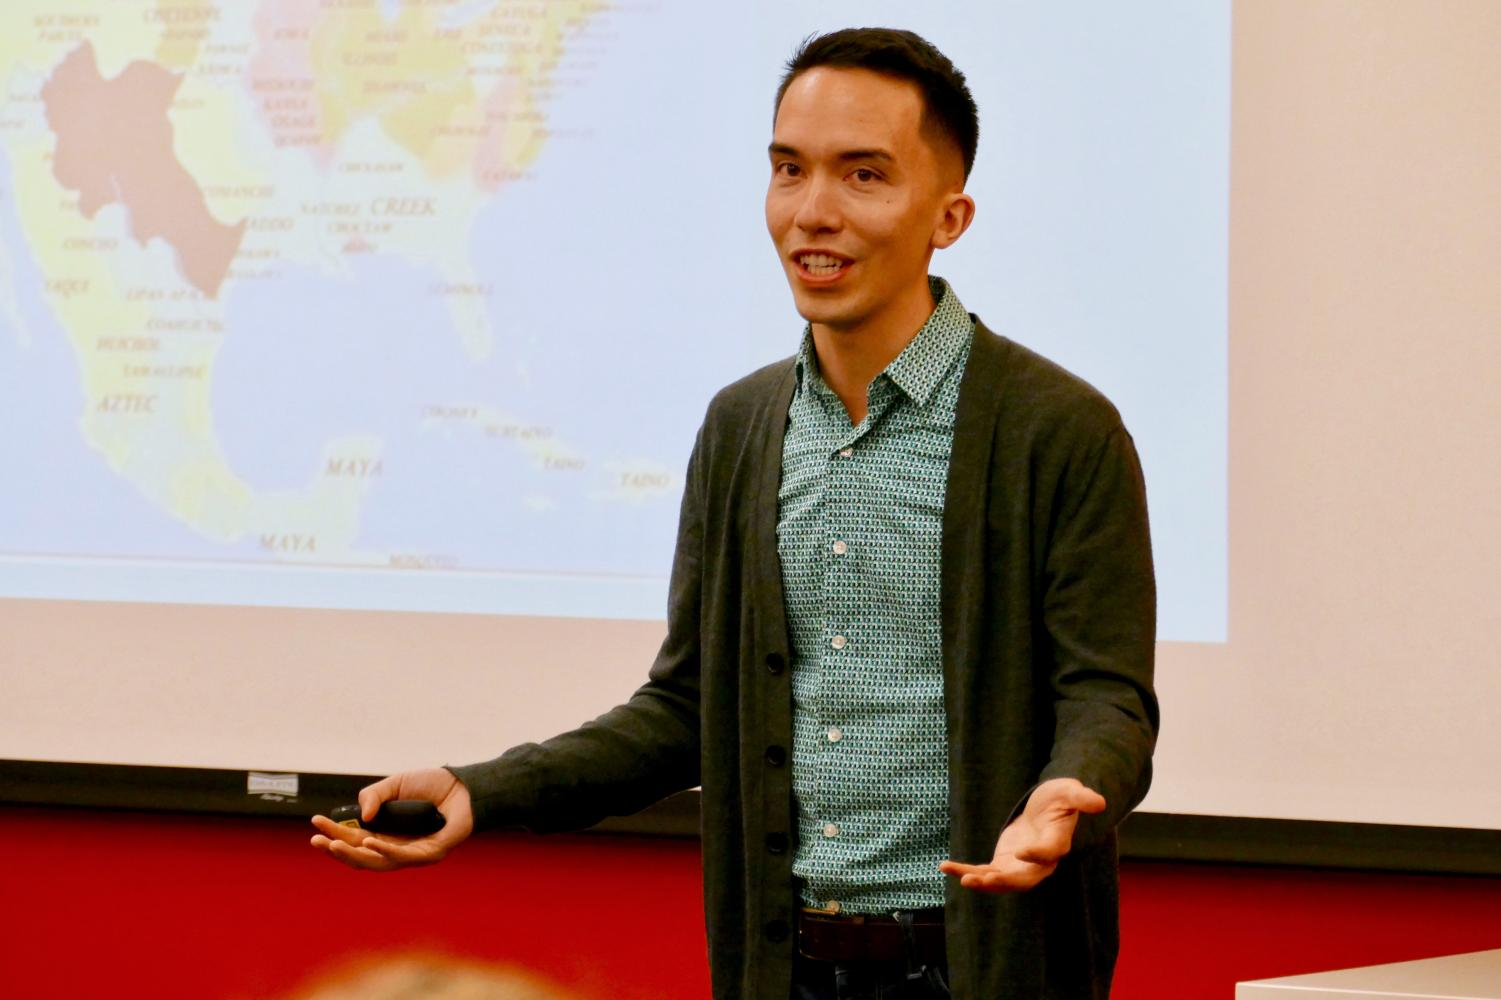 Rev. Tyler Sit is a United Methodist church planter and preaches at the LGBTQ+ friendly New City Church in Minneapolis. He was the keynote speaker for Hamline's Coming Out Week.